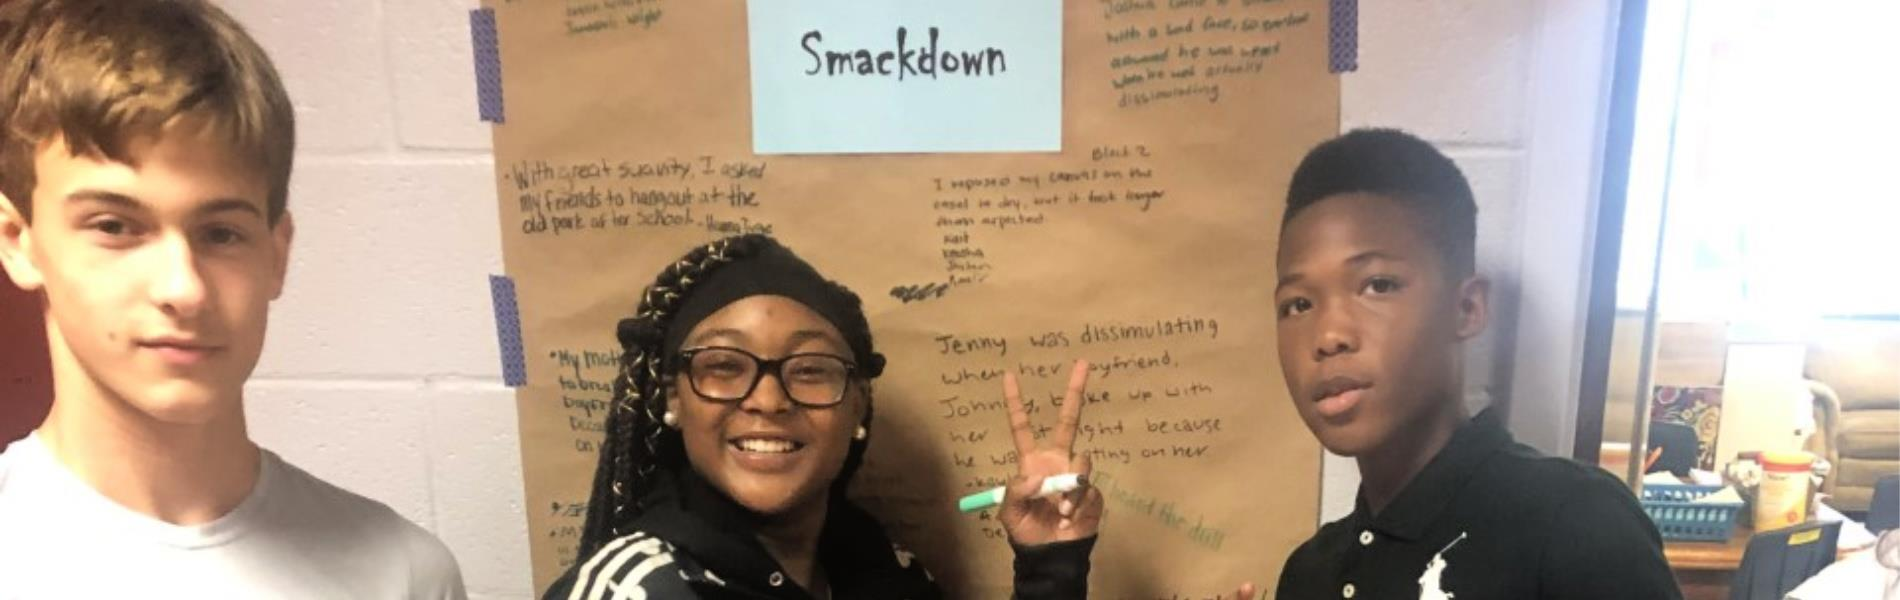 Students participate in Sentence Smackdown